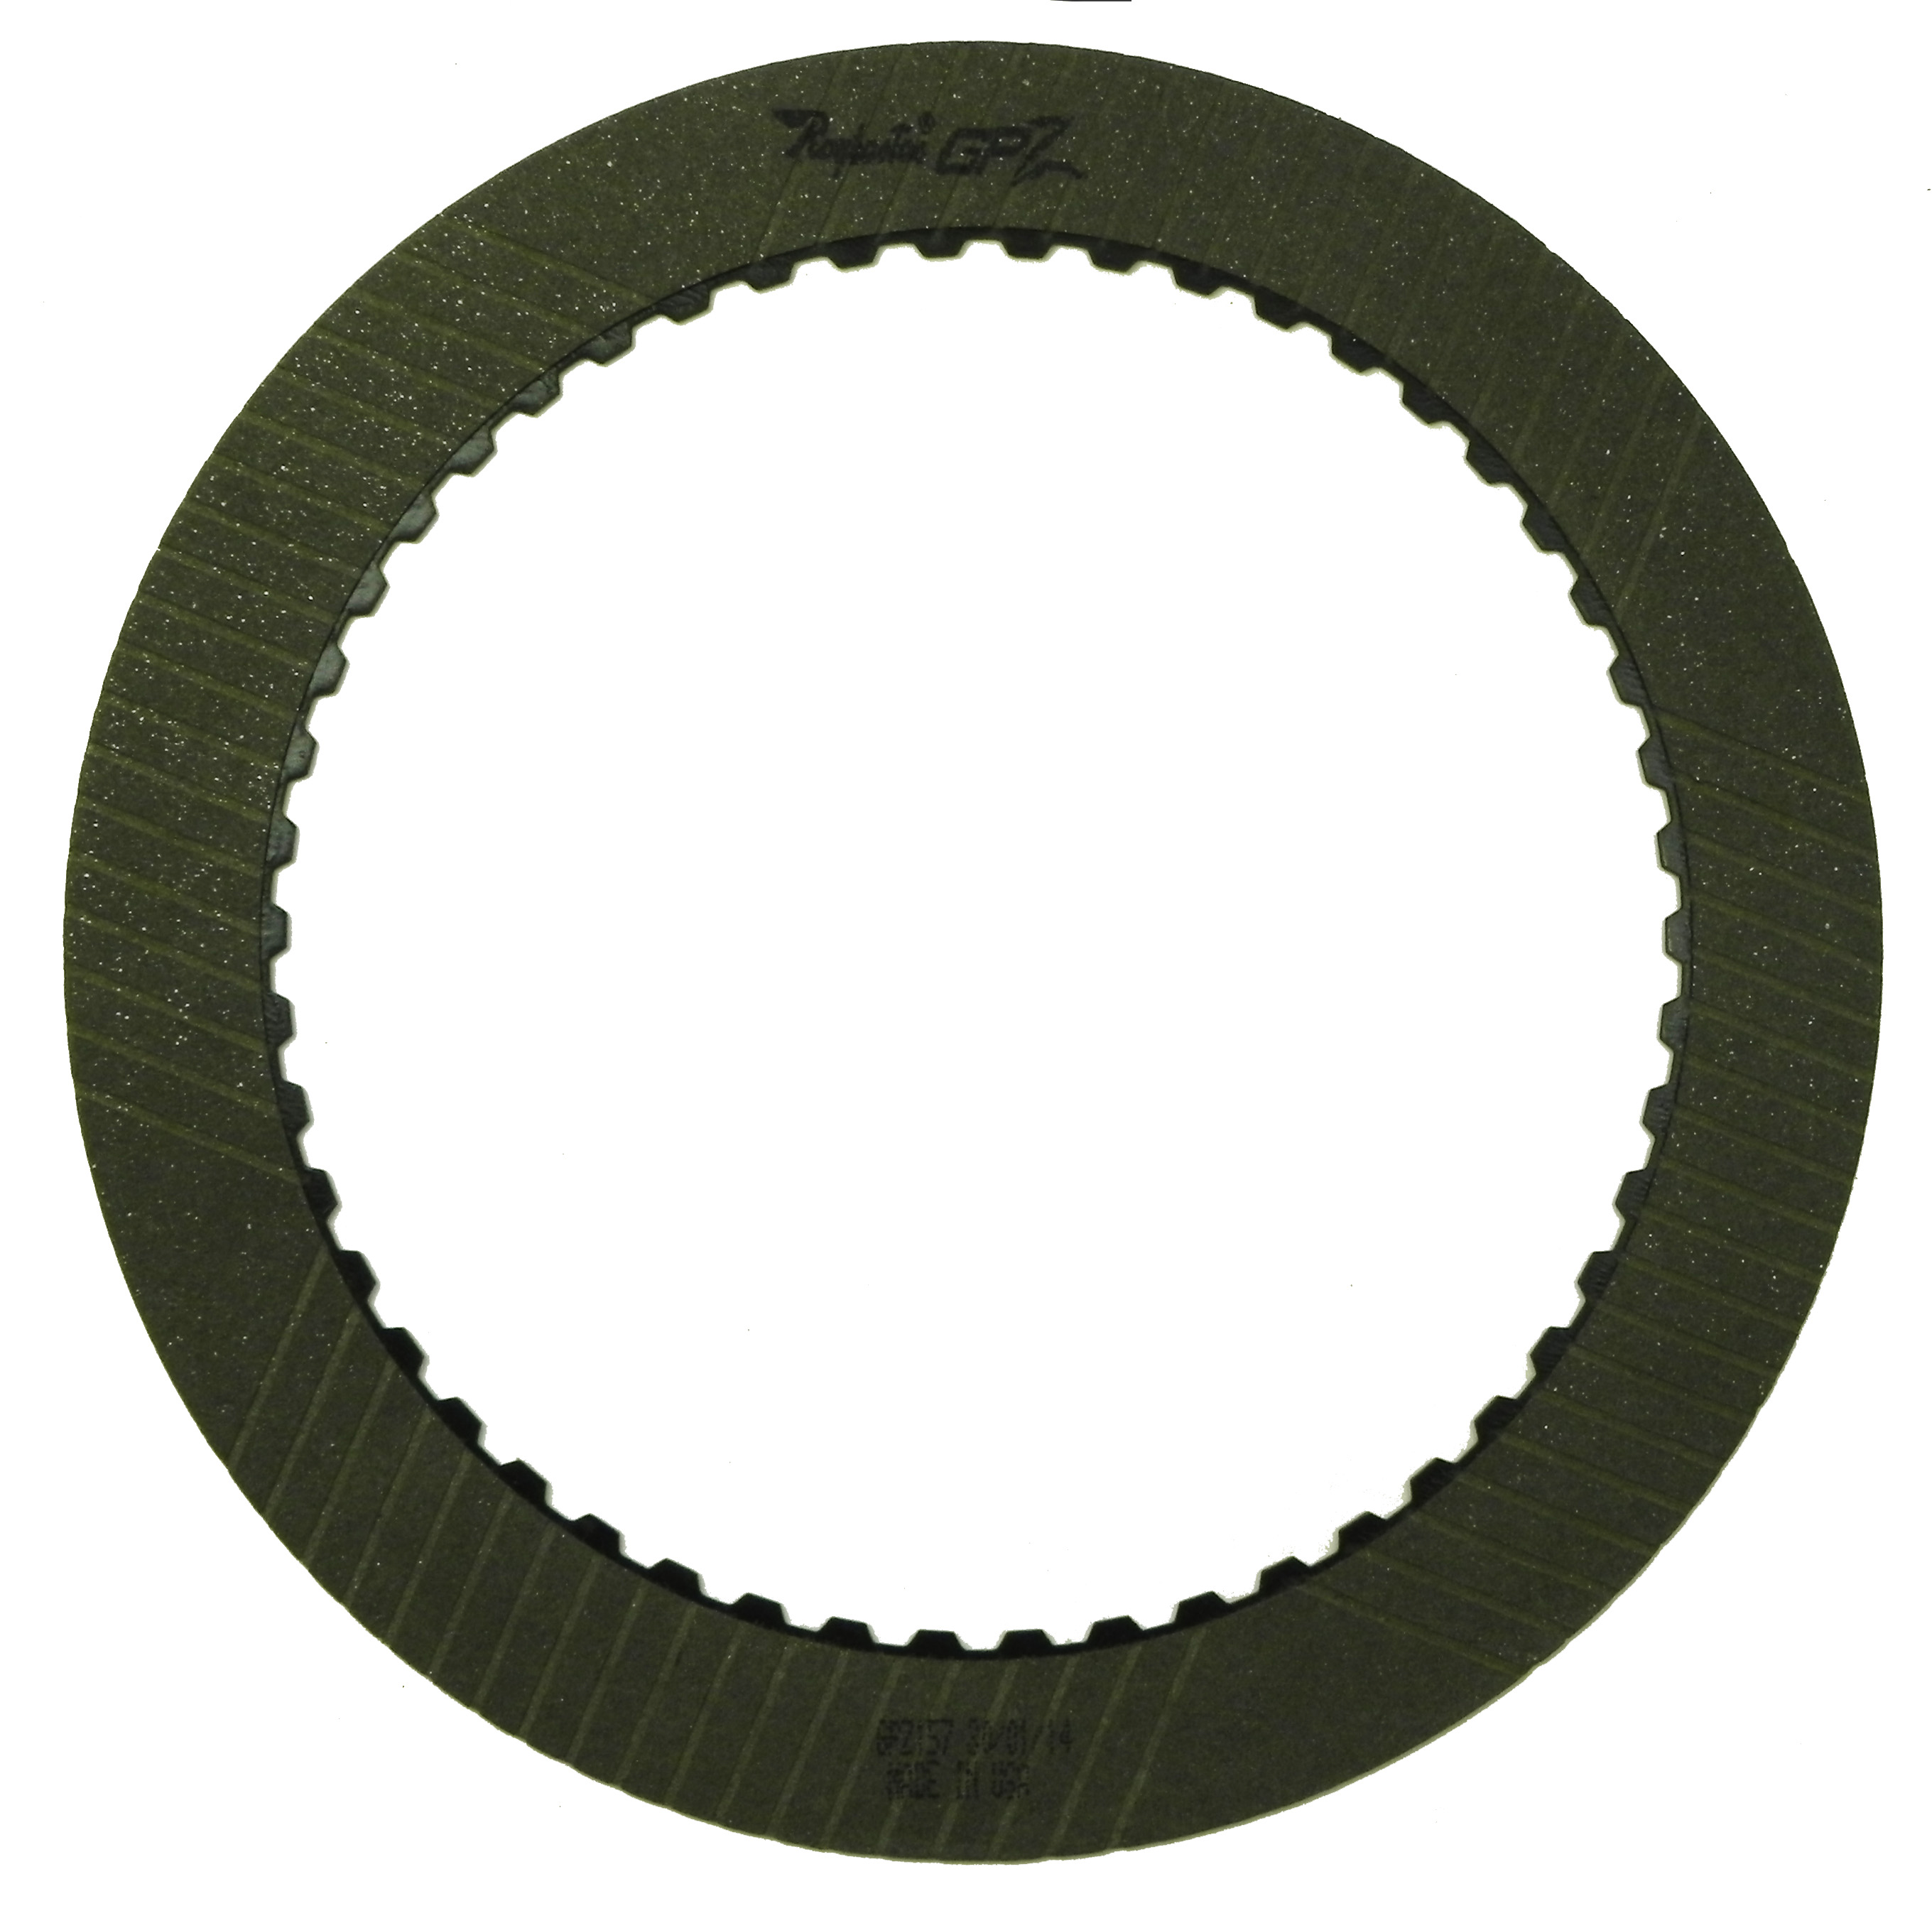 E4OD, 4R100 GPZ Friction Clutch Plate